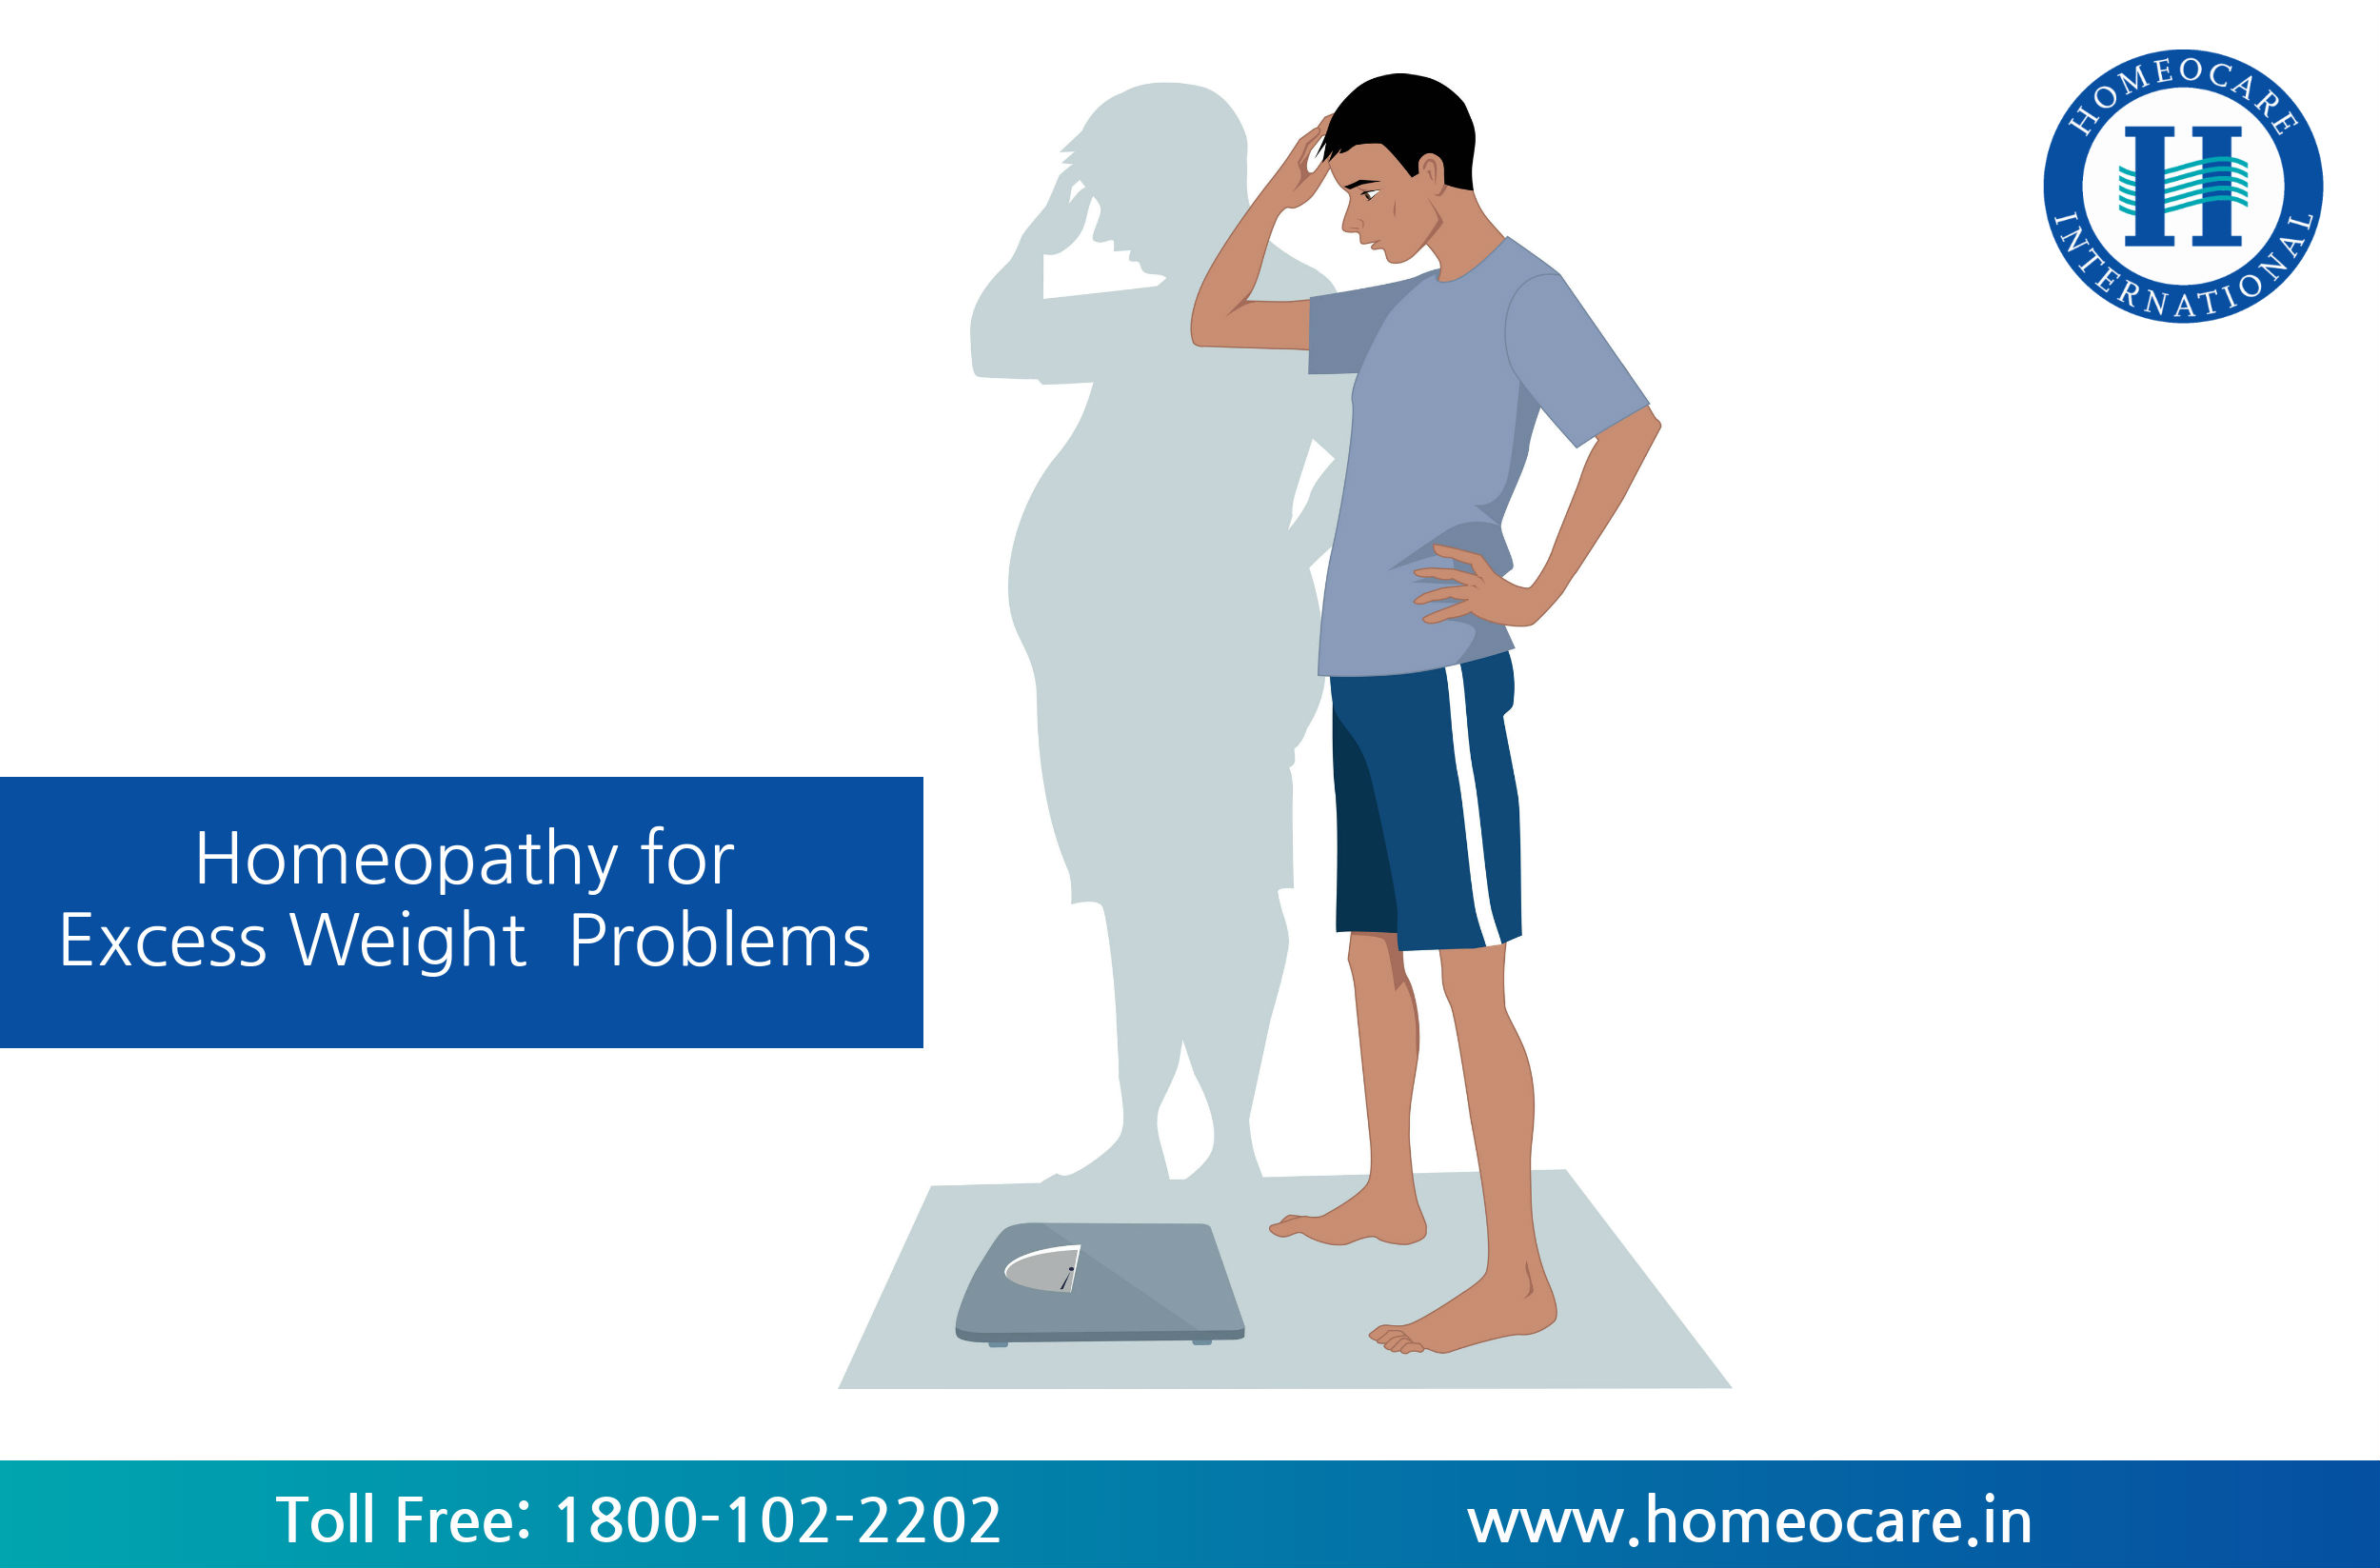 Homeopathy for Excess Weight Problems